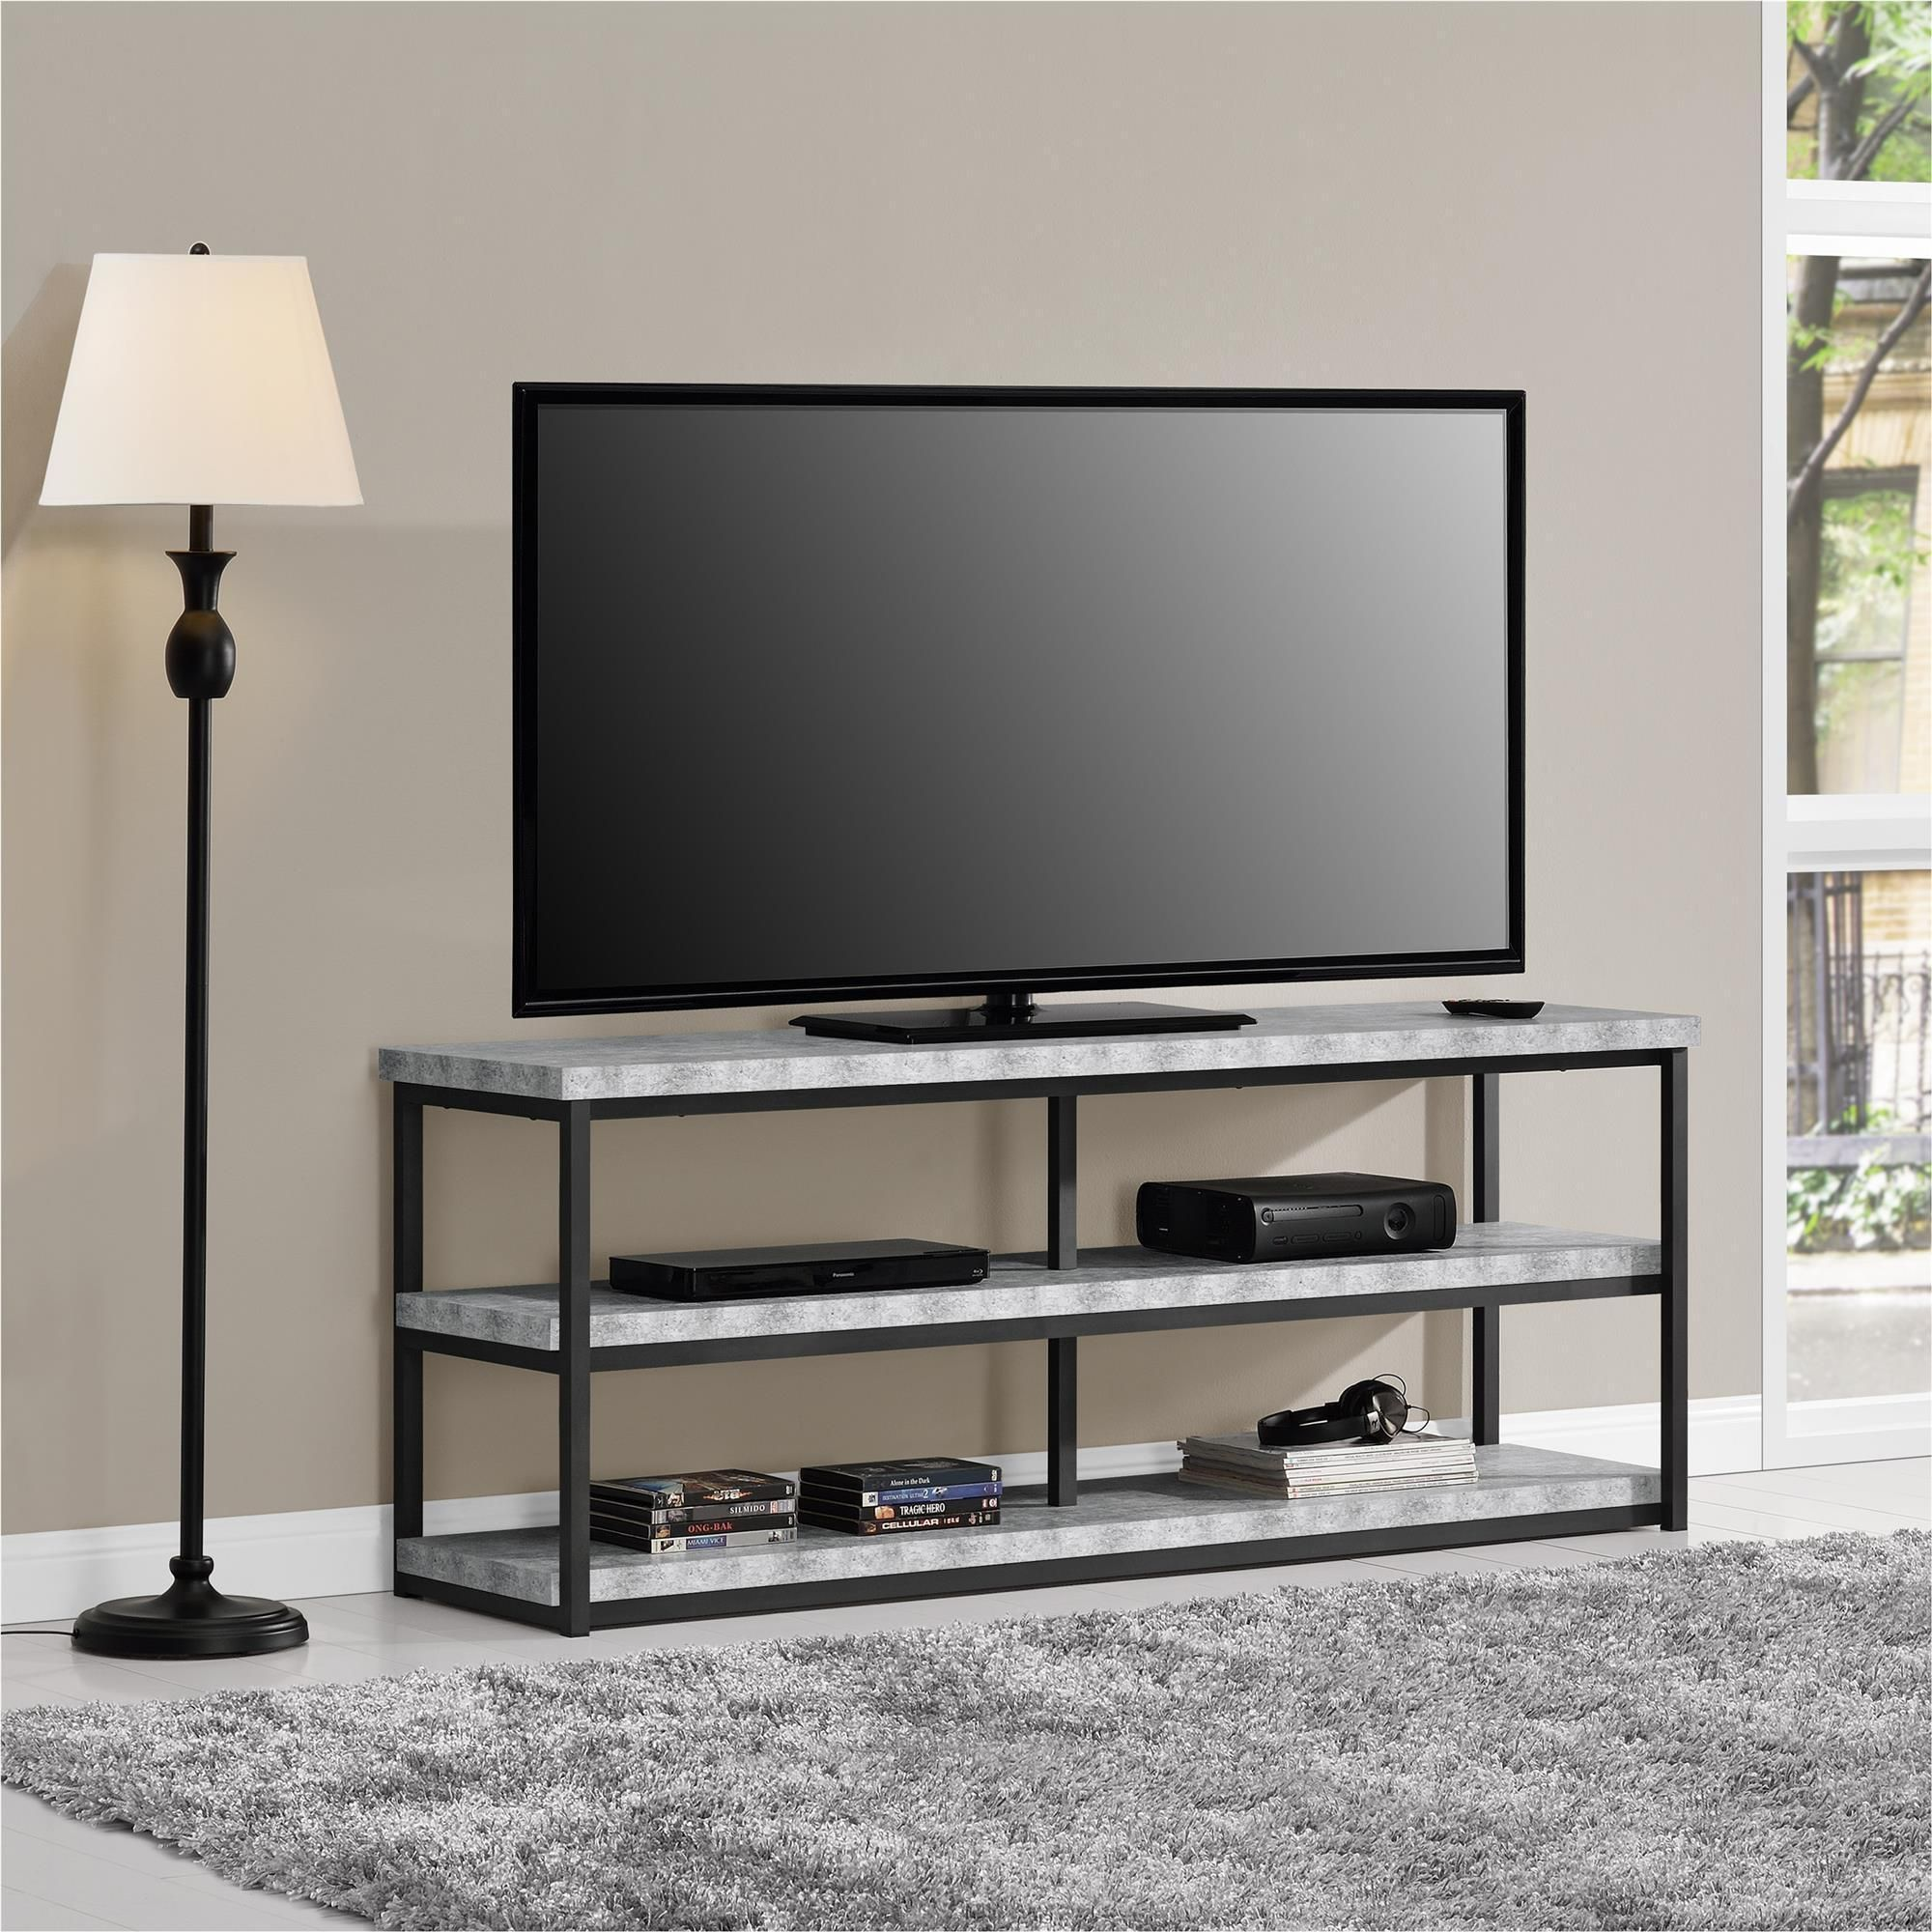 Avenue Greene Terrace Tv Stand For Tvs Up To 65